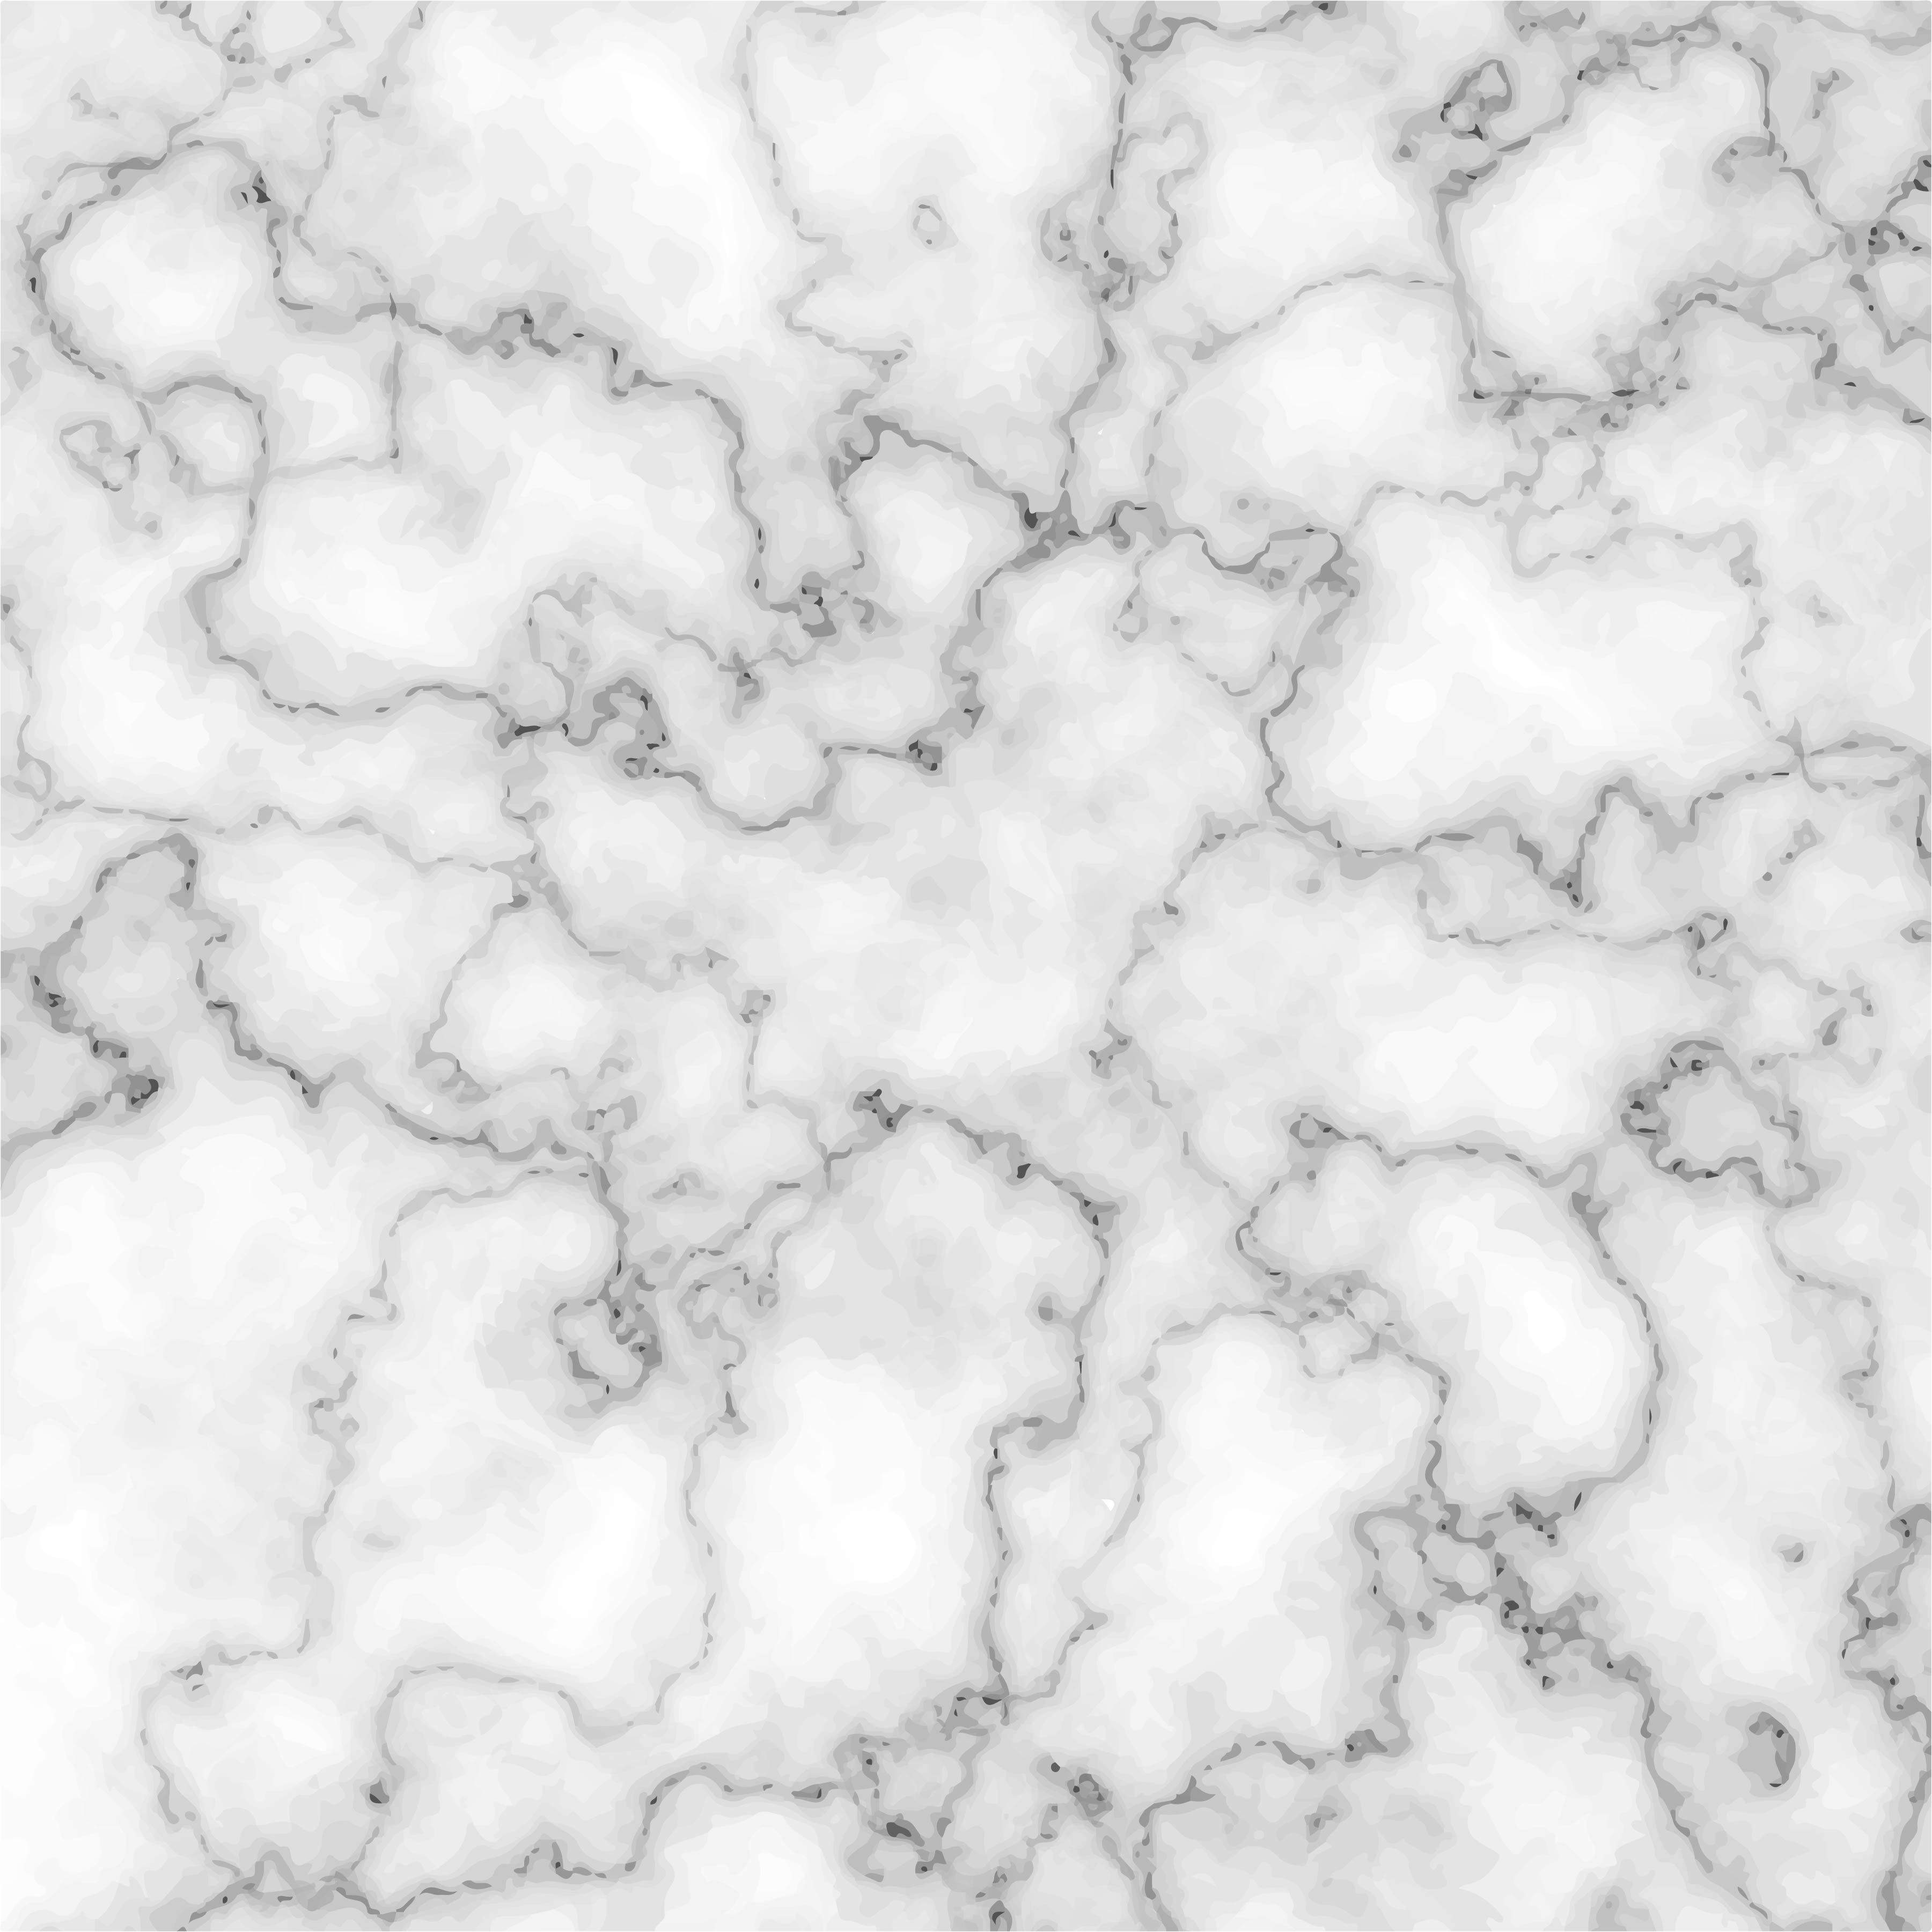 White Marble Texture Vector Background Download Free Vectors Clipart Graphics Vector Art